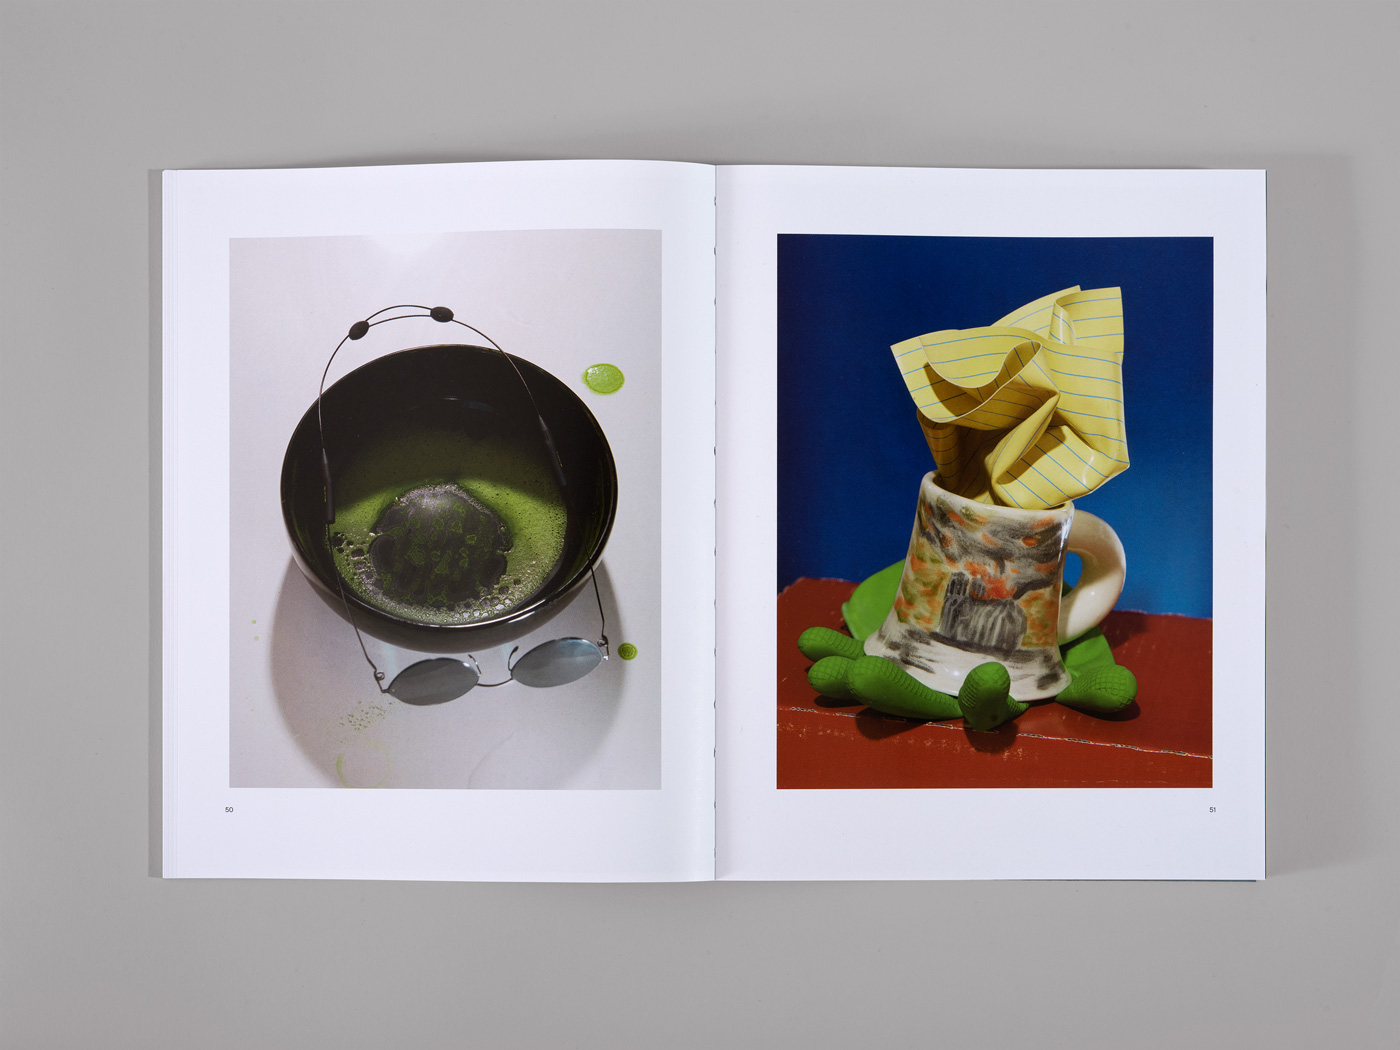 08 collide24 samepaper - The book Still Life, published by Same Paper and designed by Han Gao, invites thirteen photographers to reflect on the medium in times of the pandemic